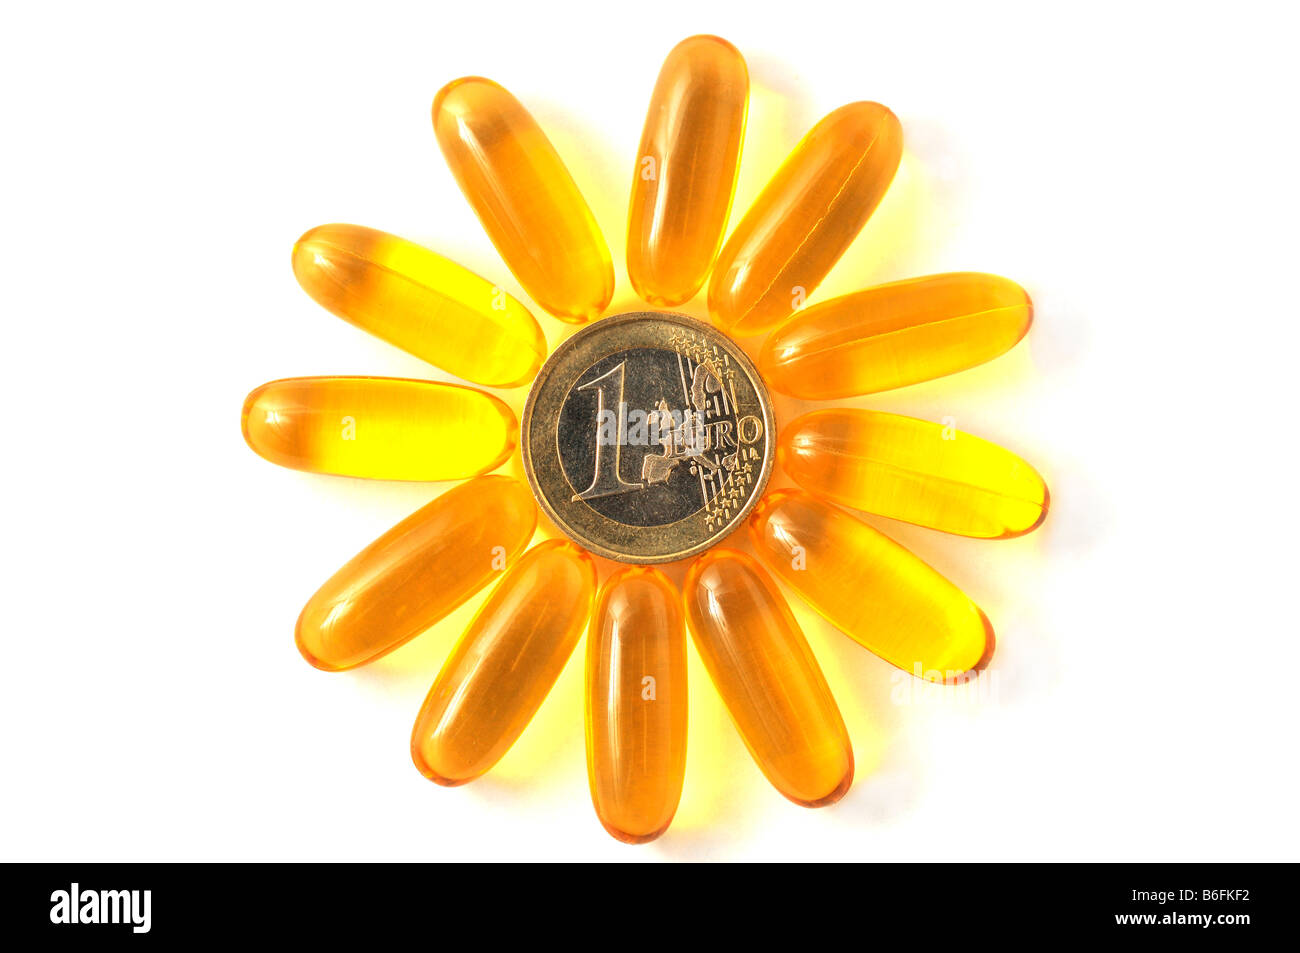 Medicine pills, capsules forming a flower in a ring around a coin - Stock Image